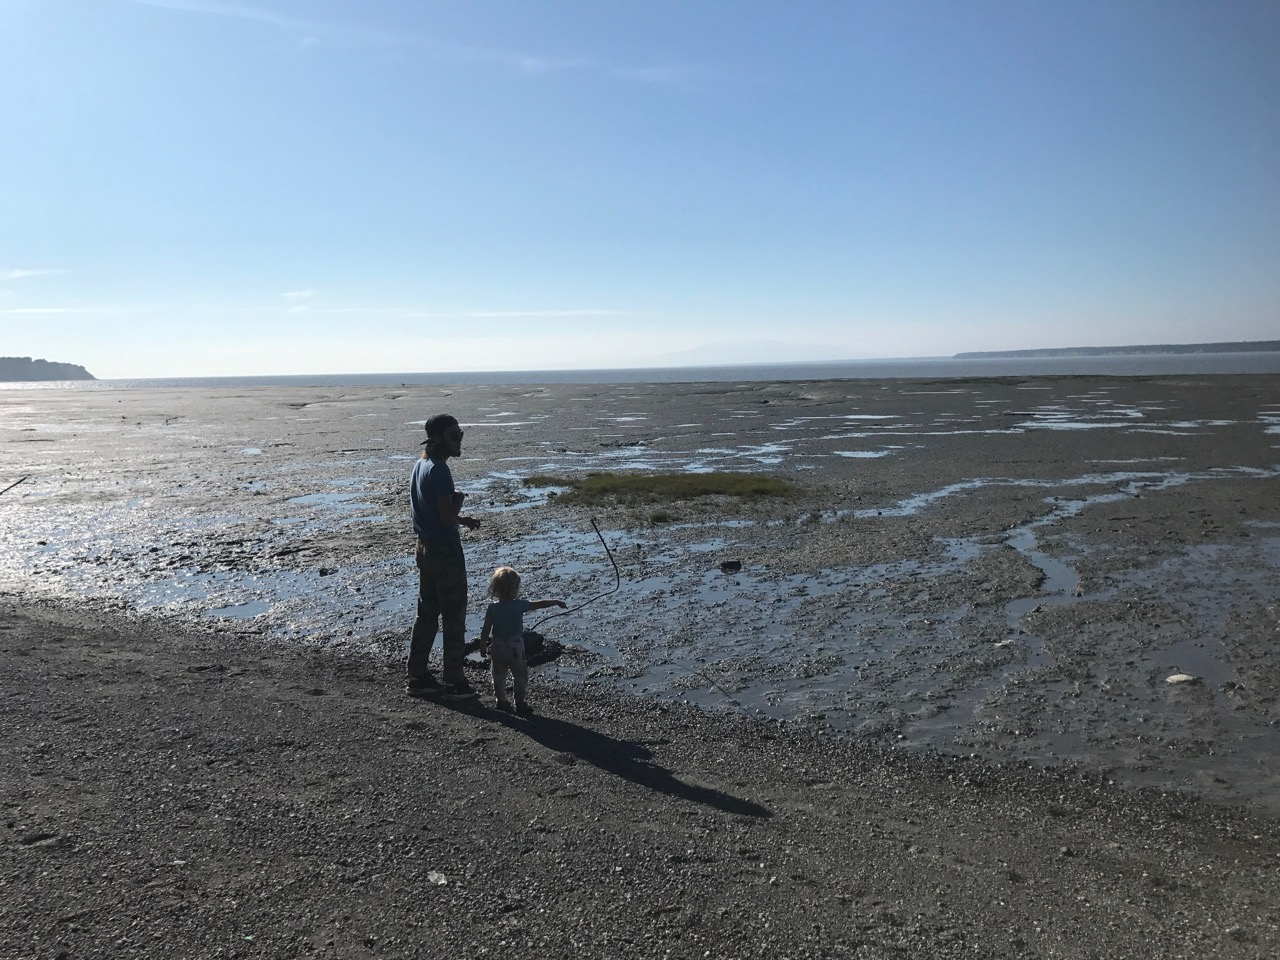 Connor and Izzy look out over the mudflats of Knik Arm. The mud can be like quicksand out there, thats why we stayed on the beach.